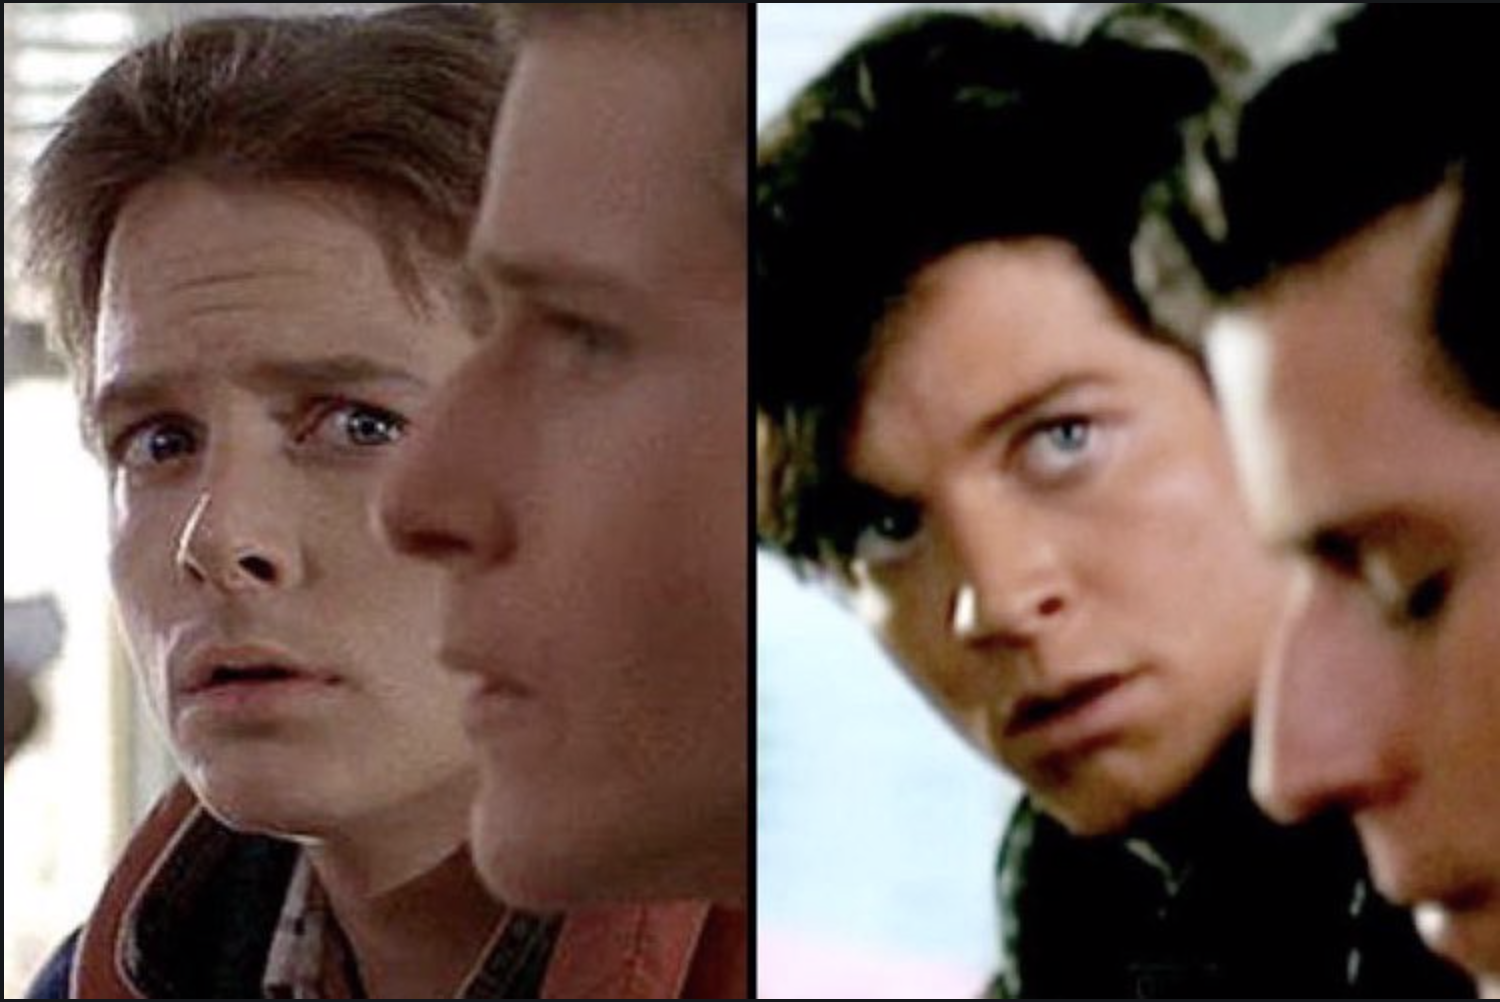 Eric Stoltz as Marty McFly side by side with Michael J. Fox as Marty